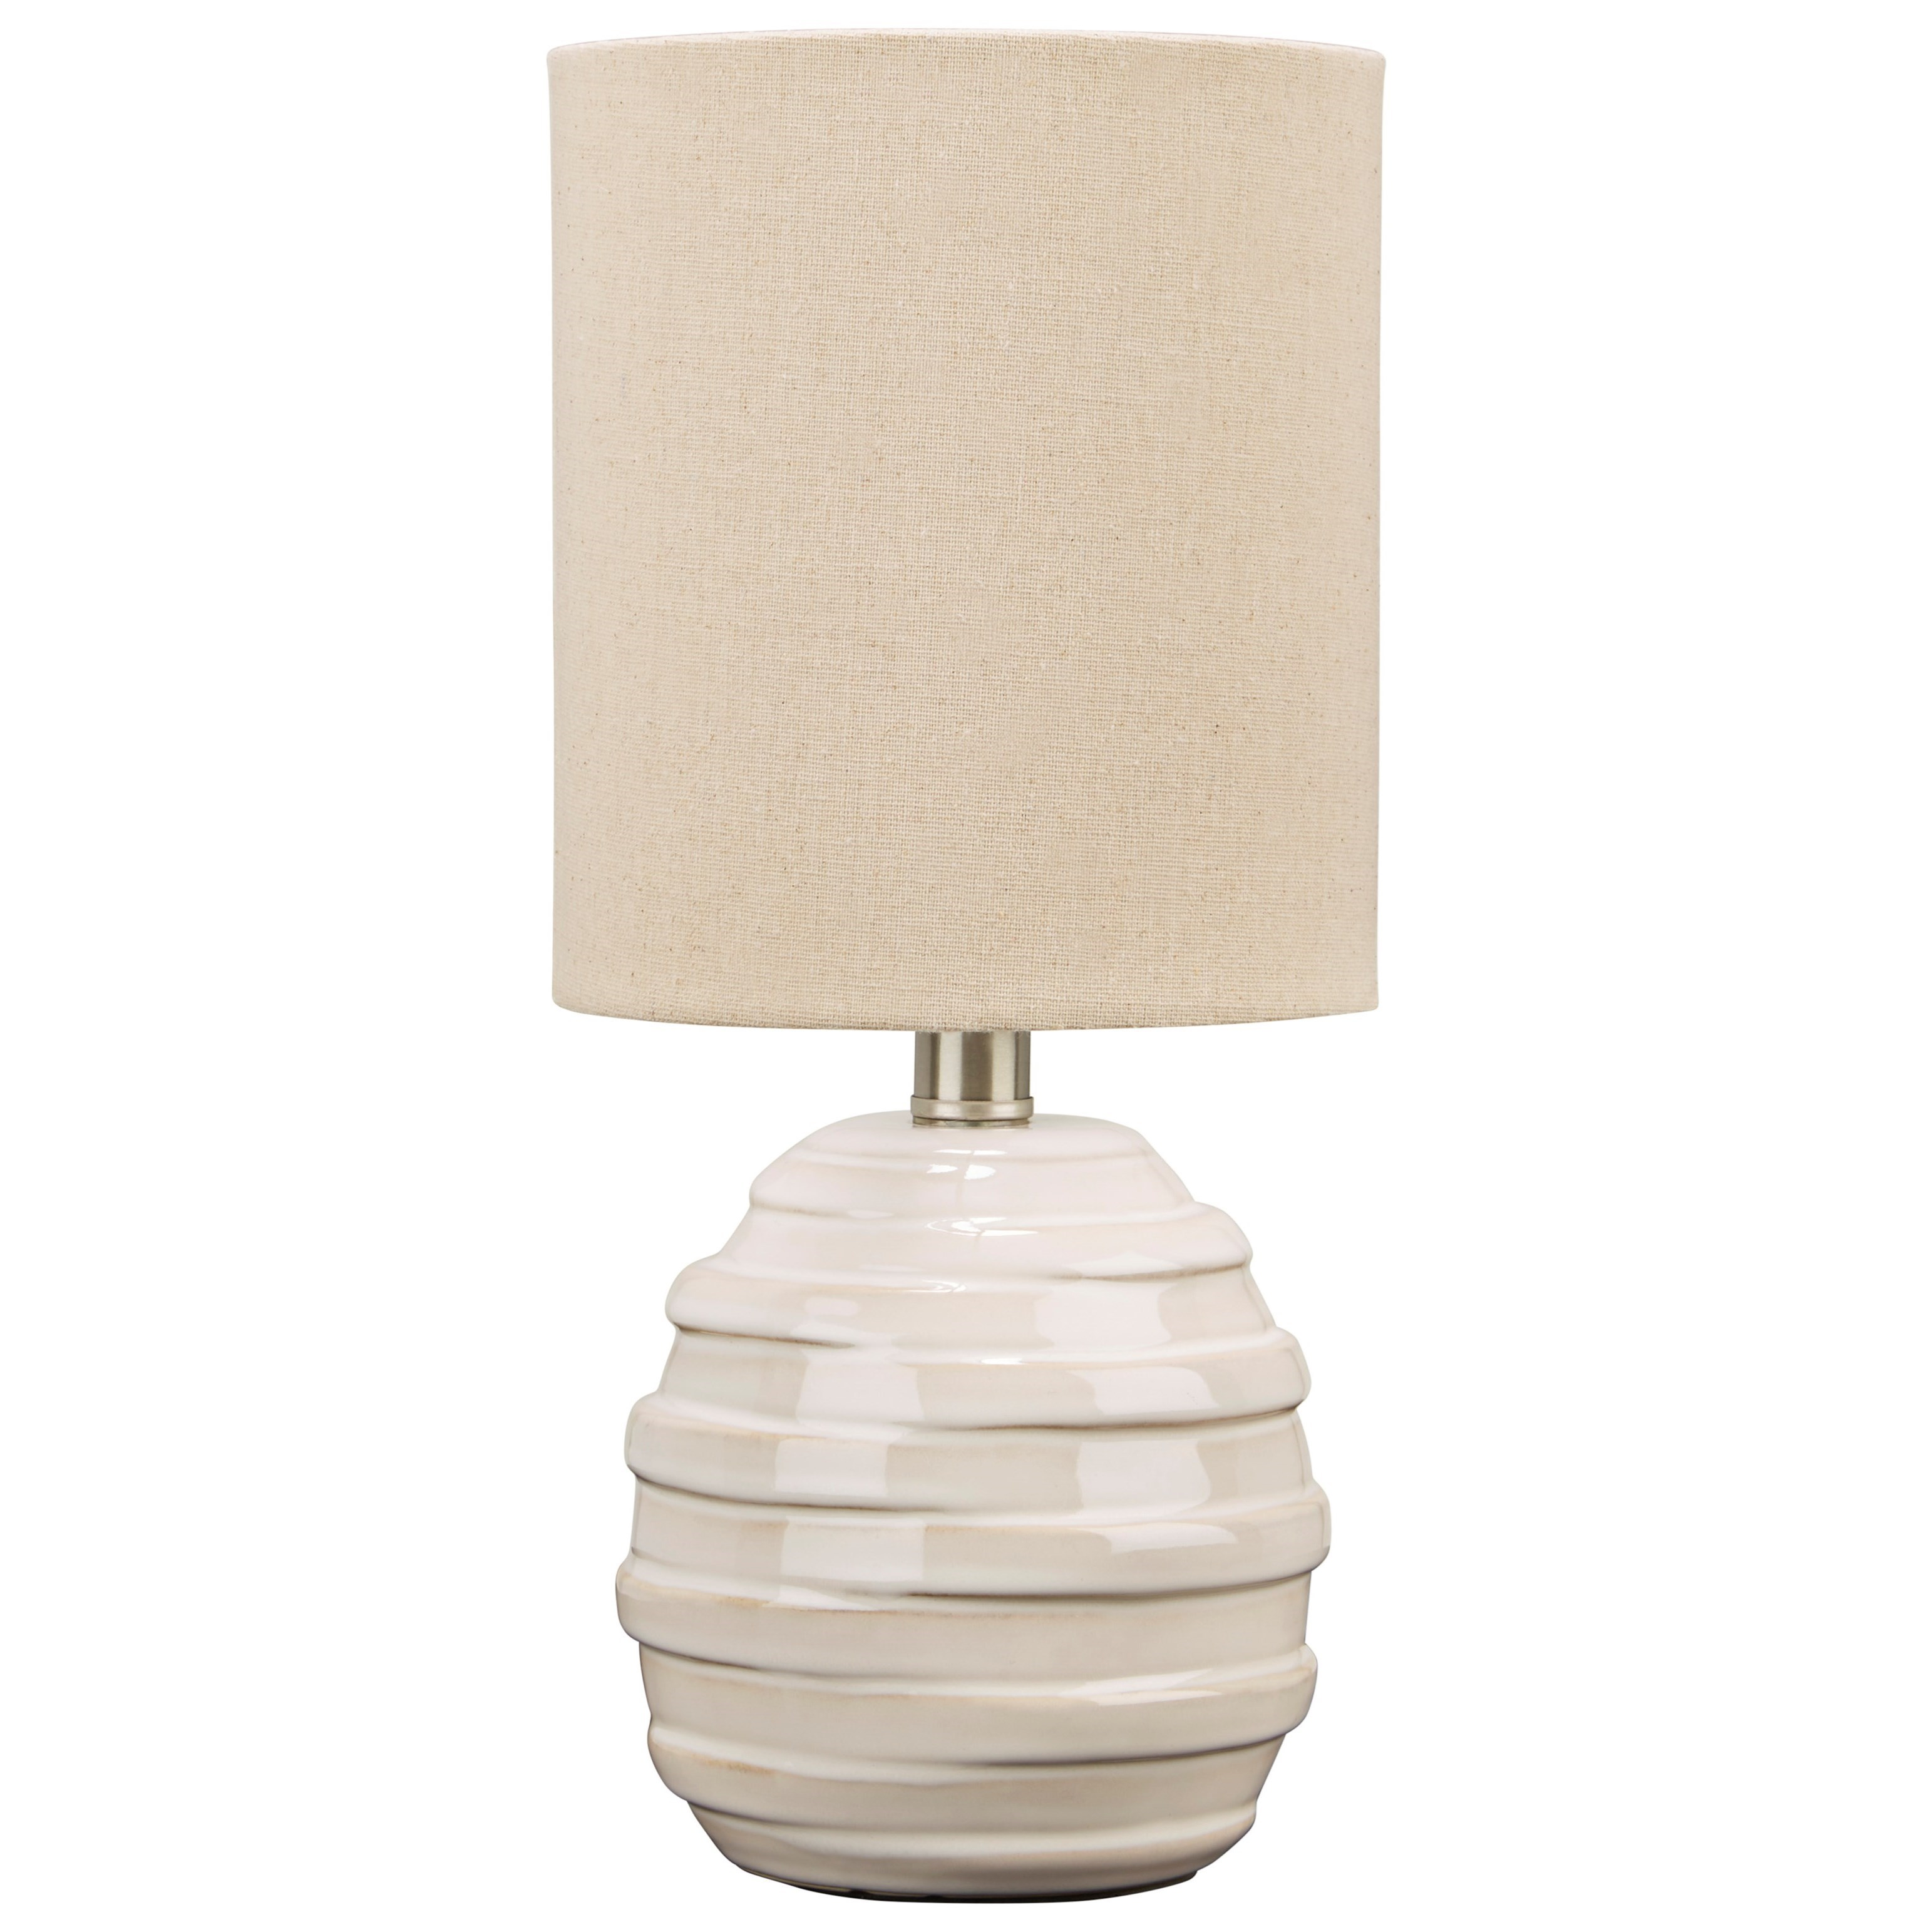 Lamps - Casual Glennwick White Ceramic Table Lamp by Ashley (Signature Design) at Johnny Janosik